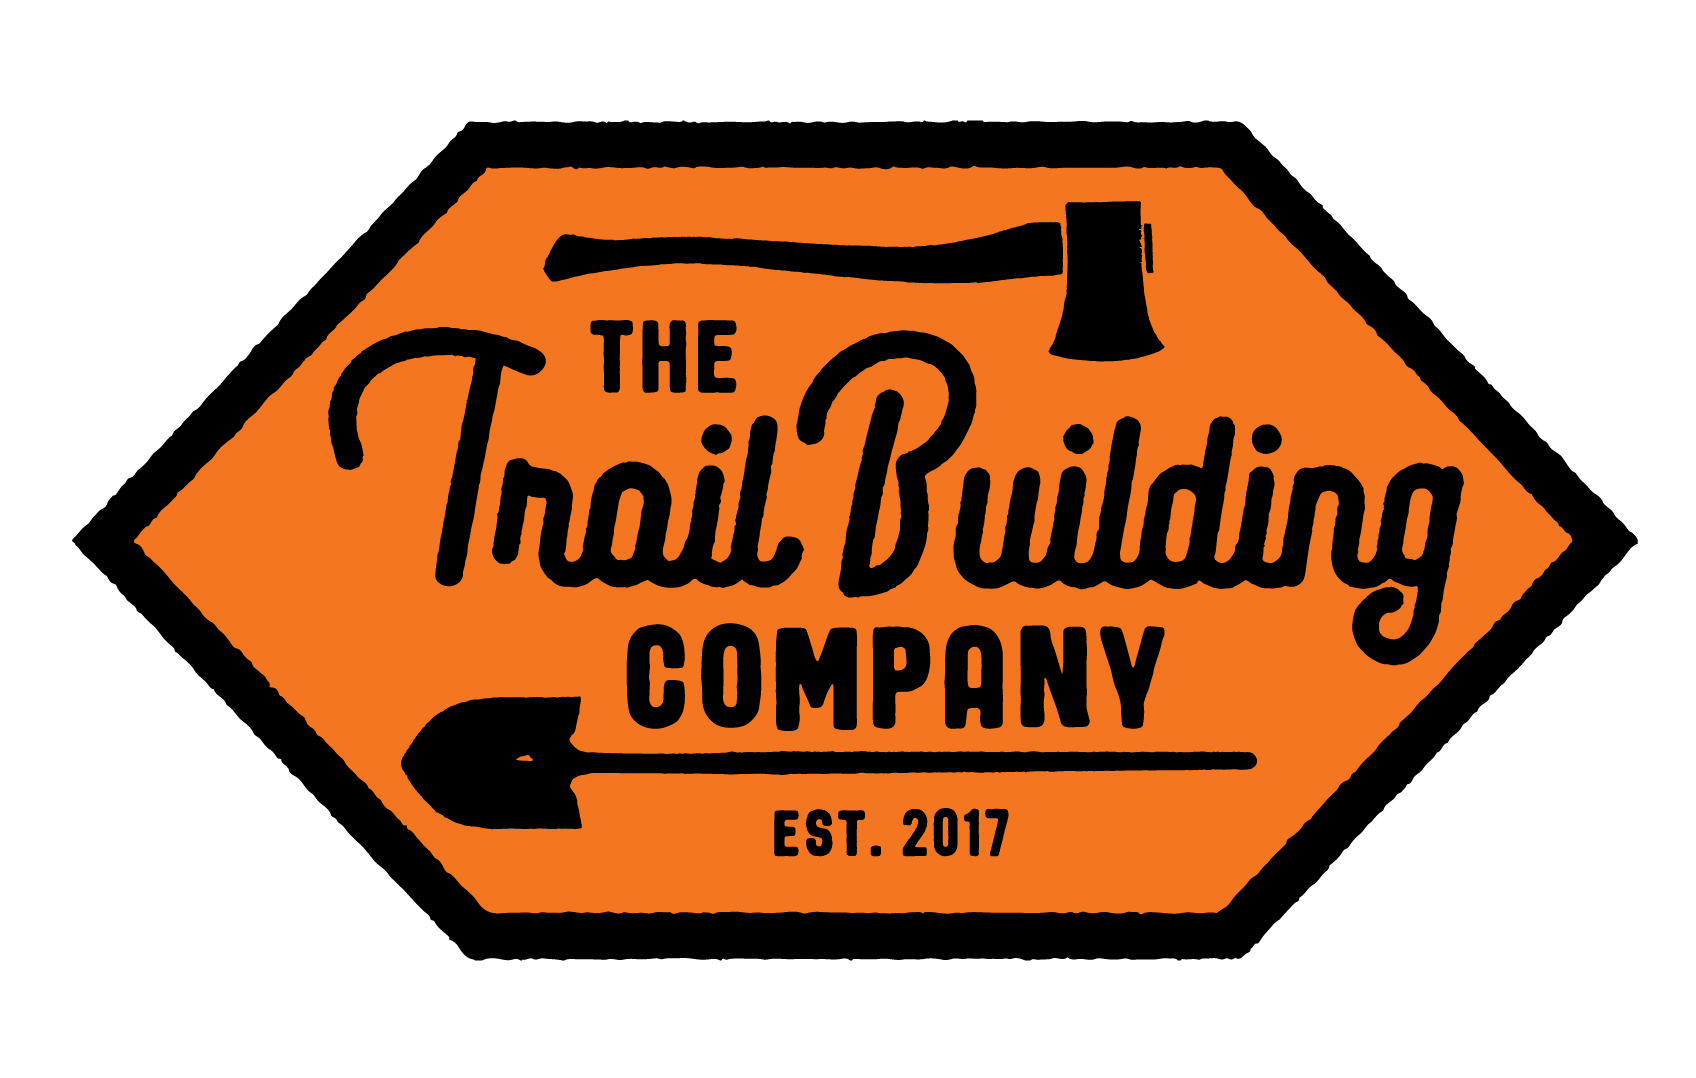 The Trail Building Company